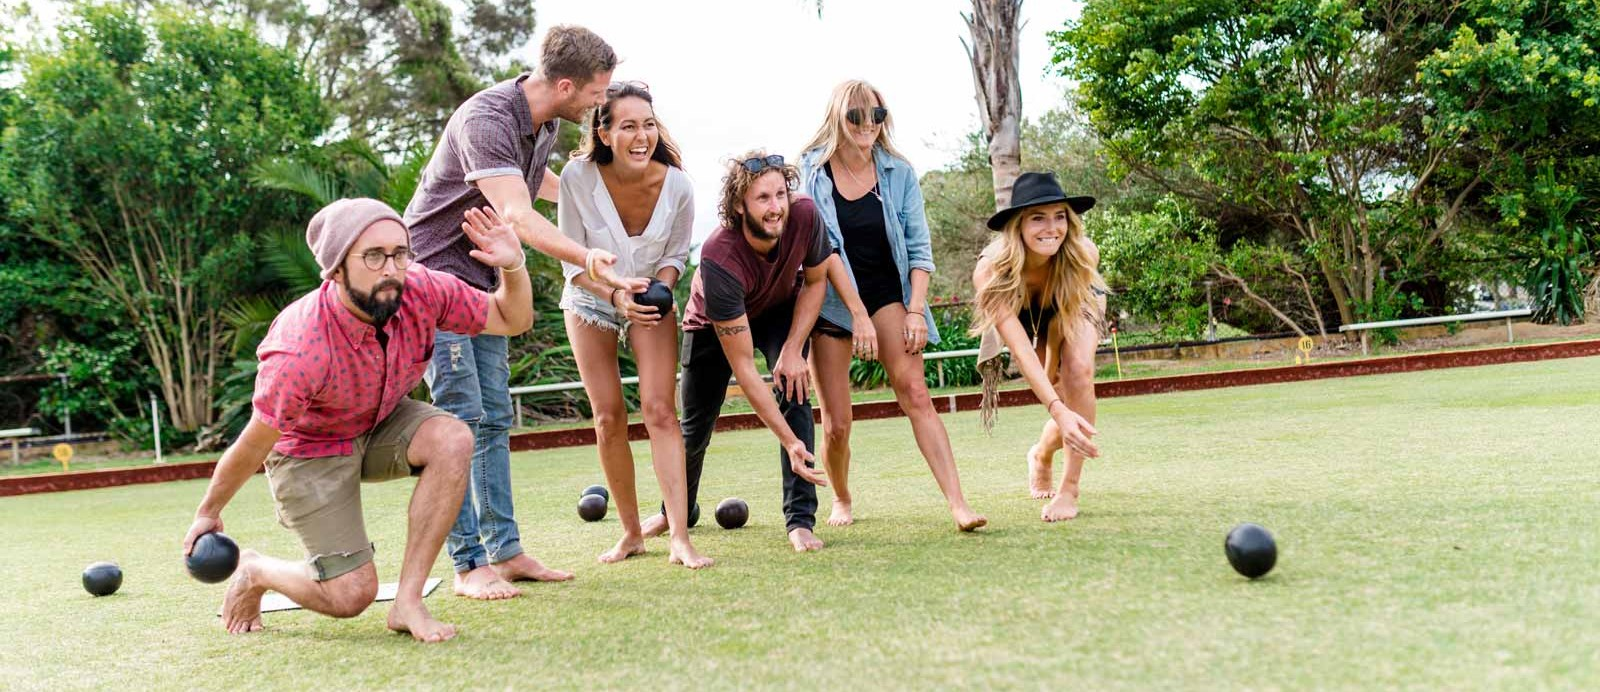 East Fremantle Bowling Club Barefoot Bowling